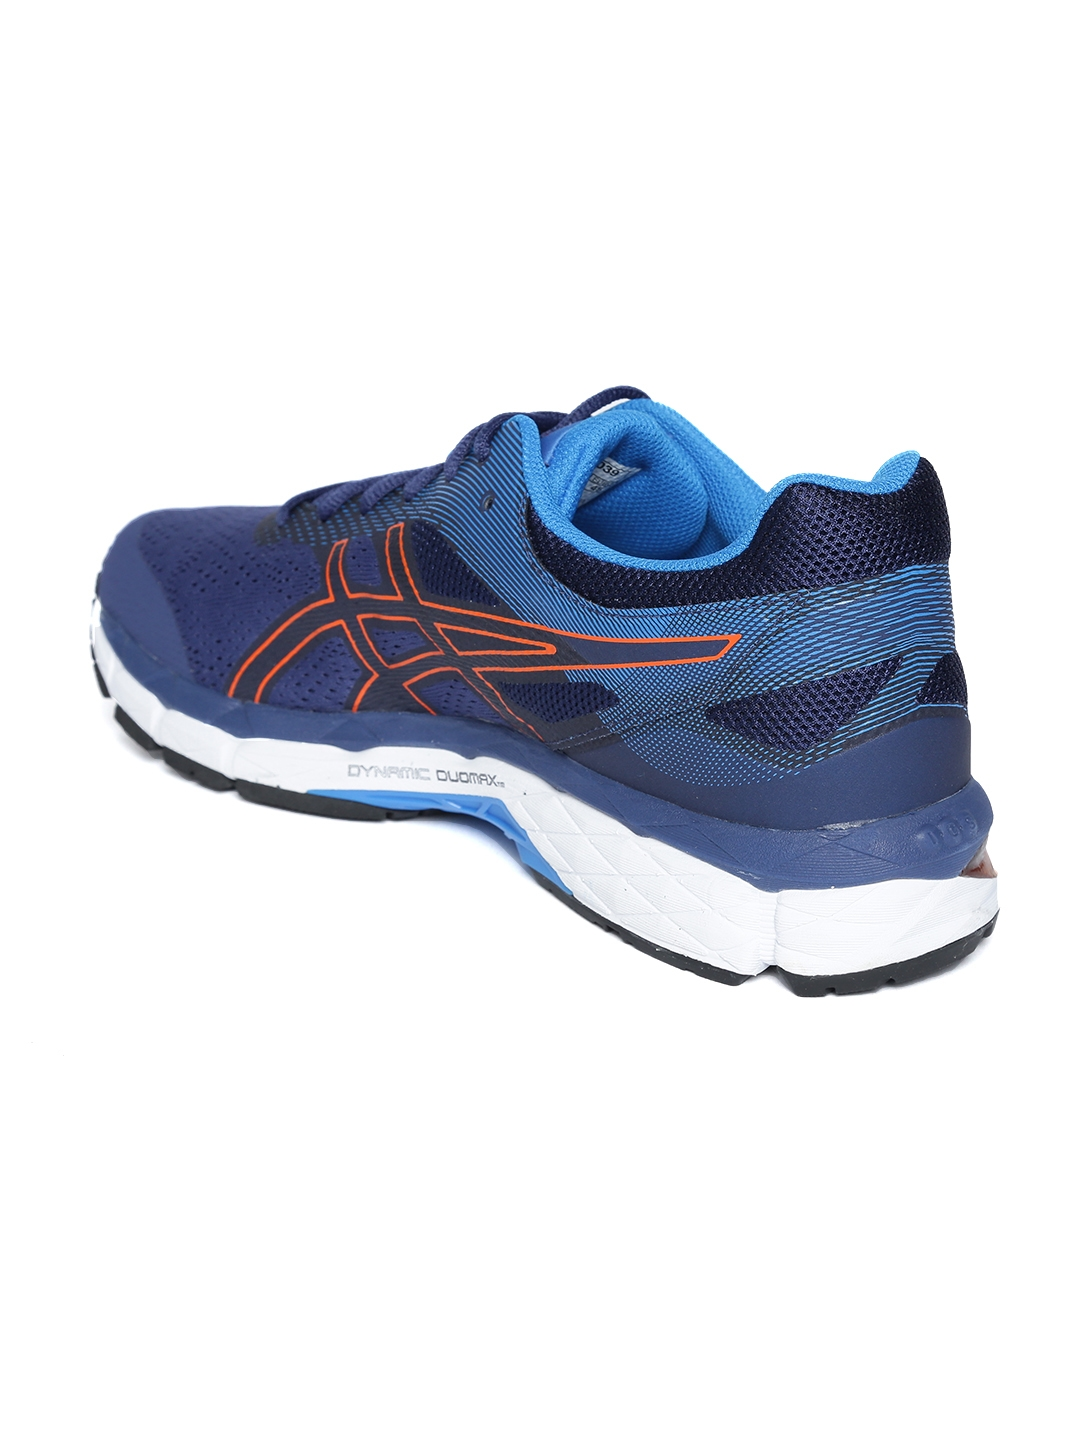 e8b28a5233 Buy ASICS Men Navy Blue Gel Superion 2 Running Shoes - Sports Shoes ...